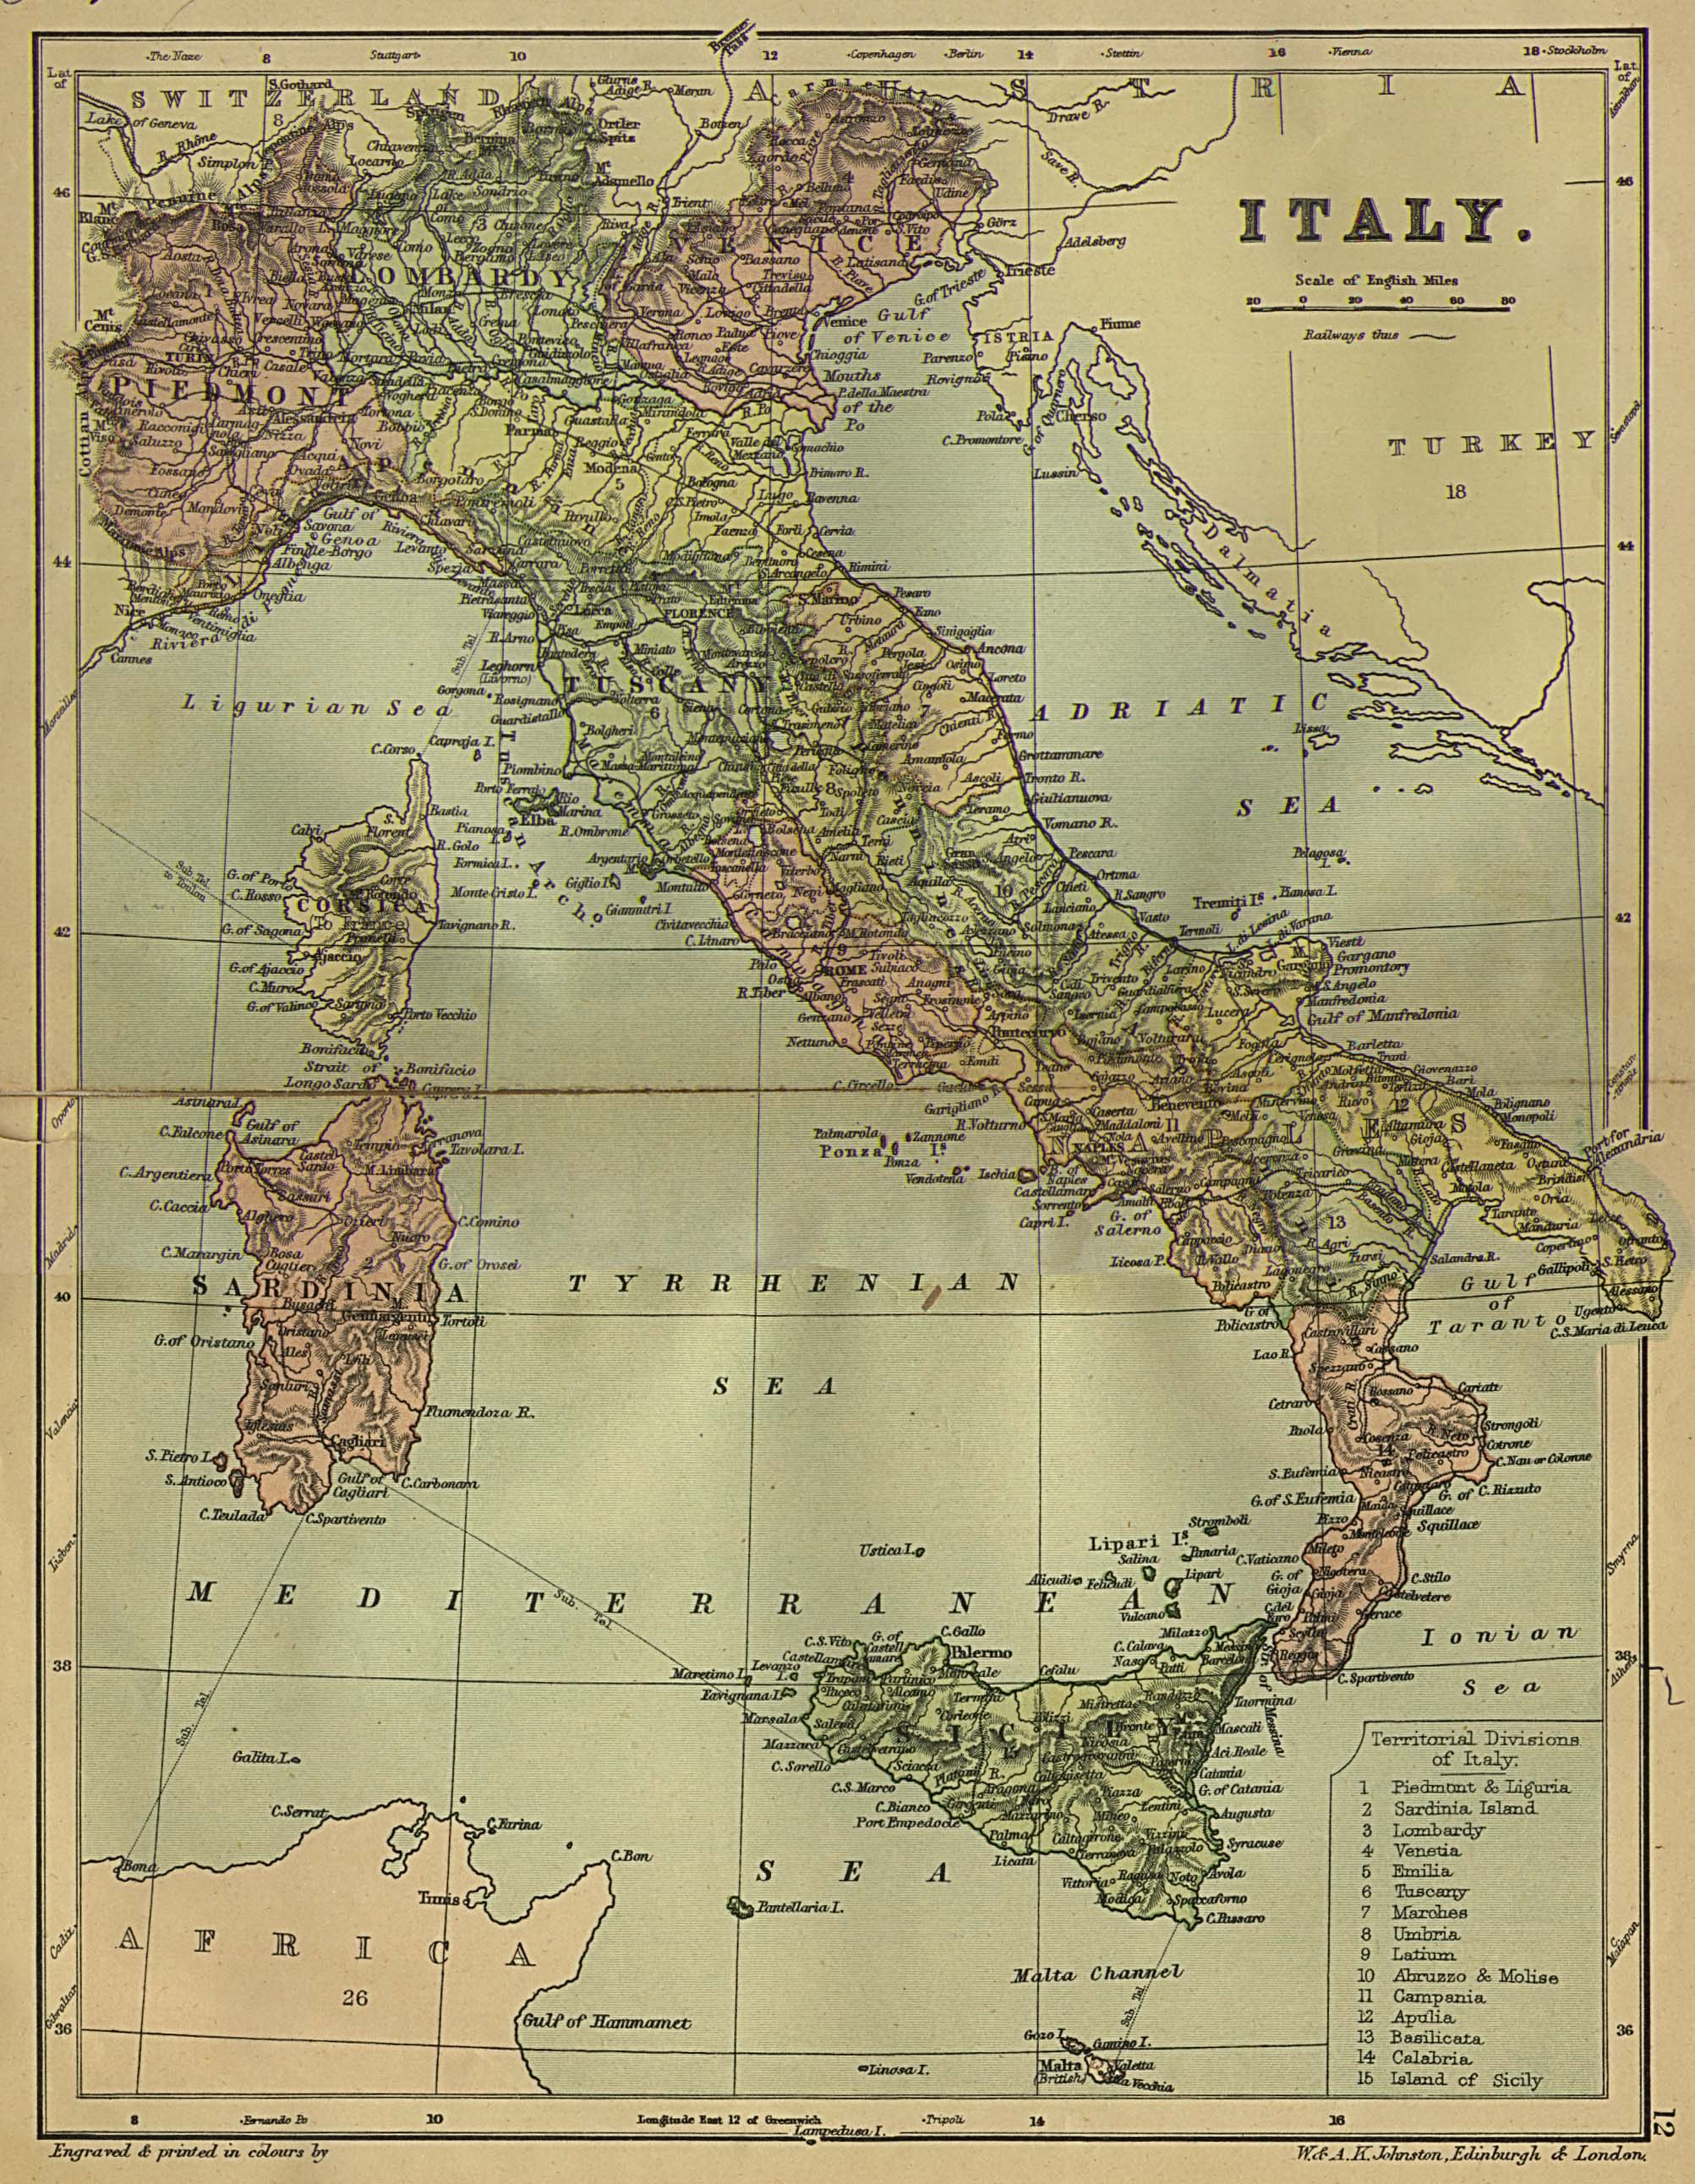 Stock images high resolution antique maps of europe.